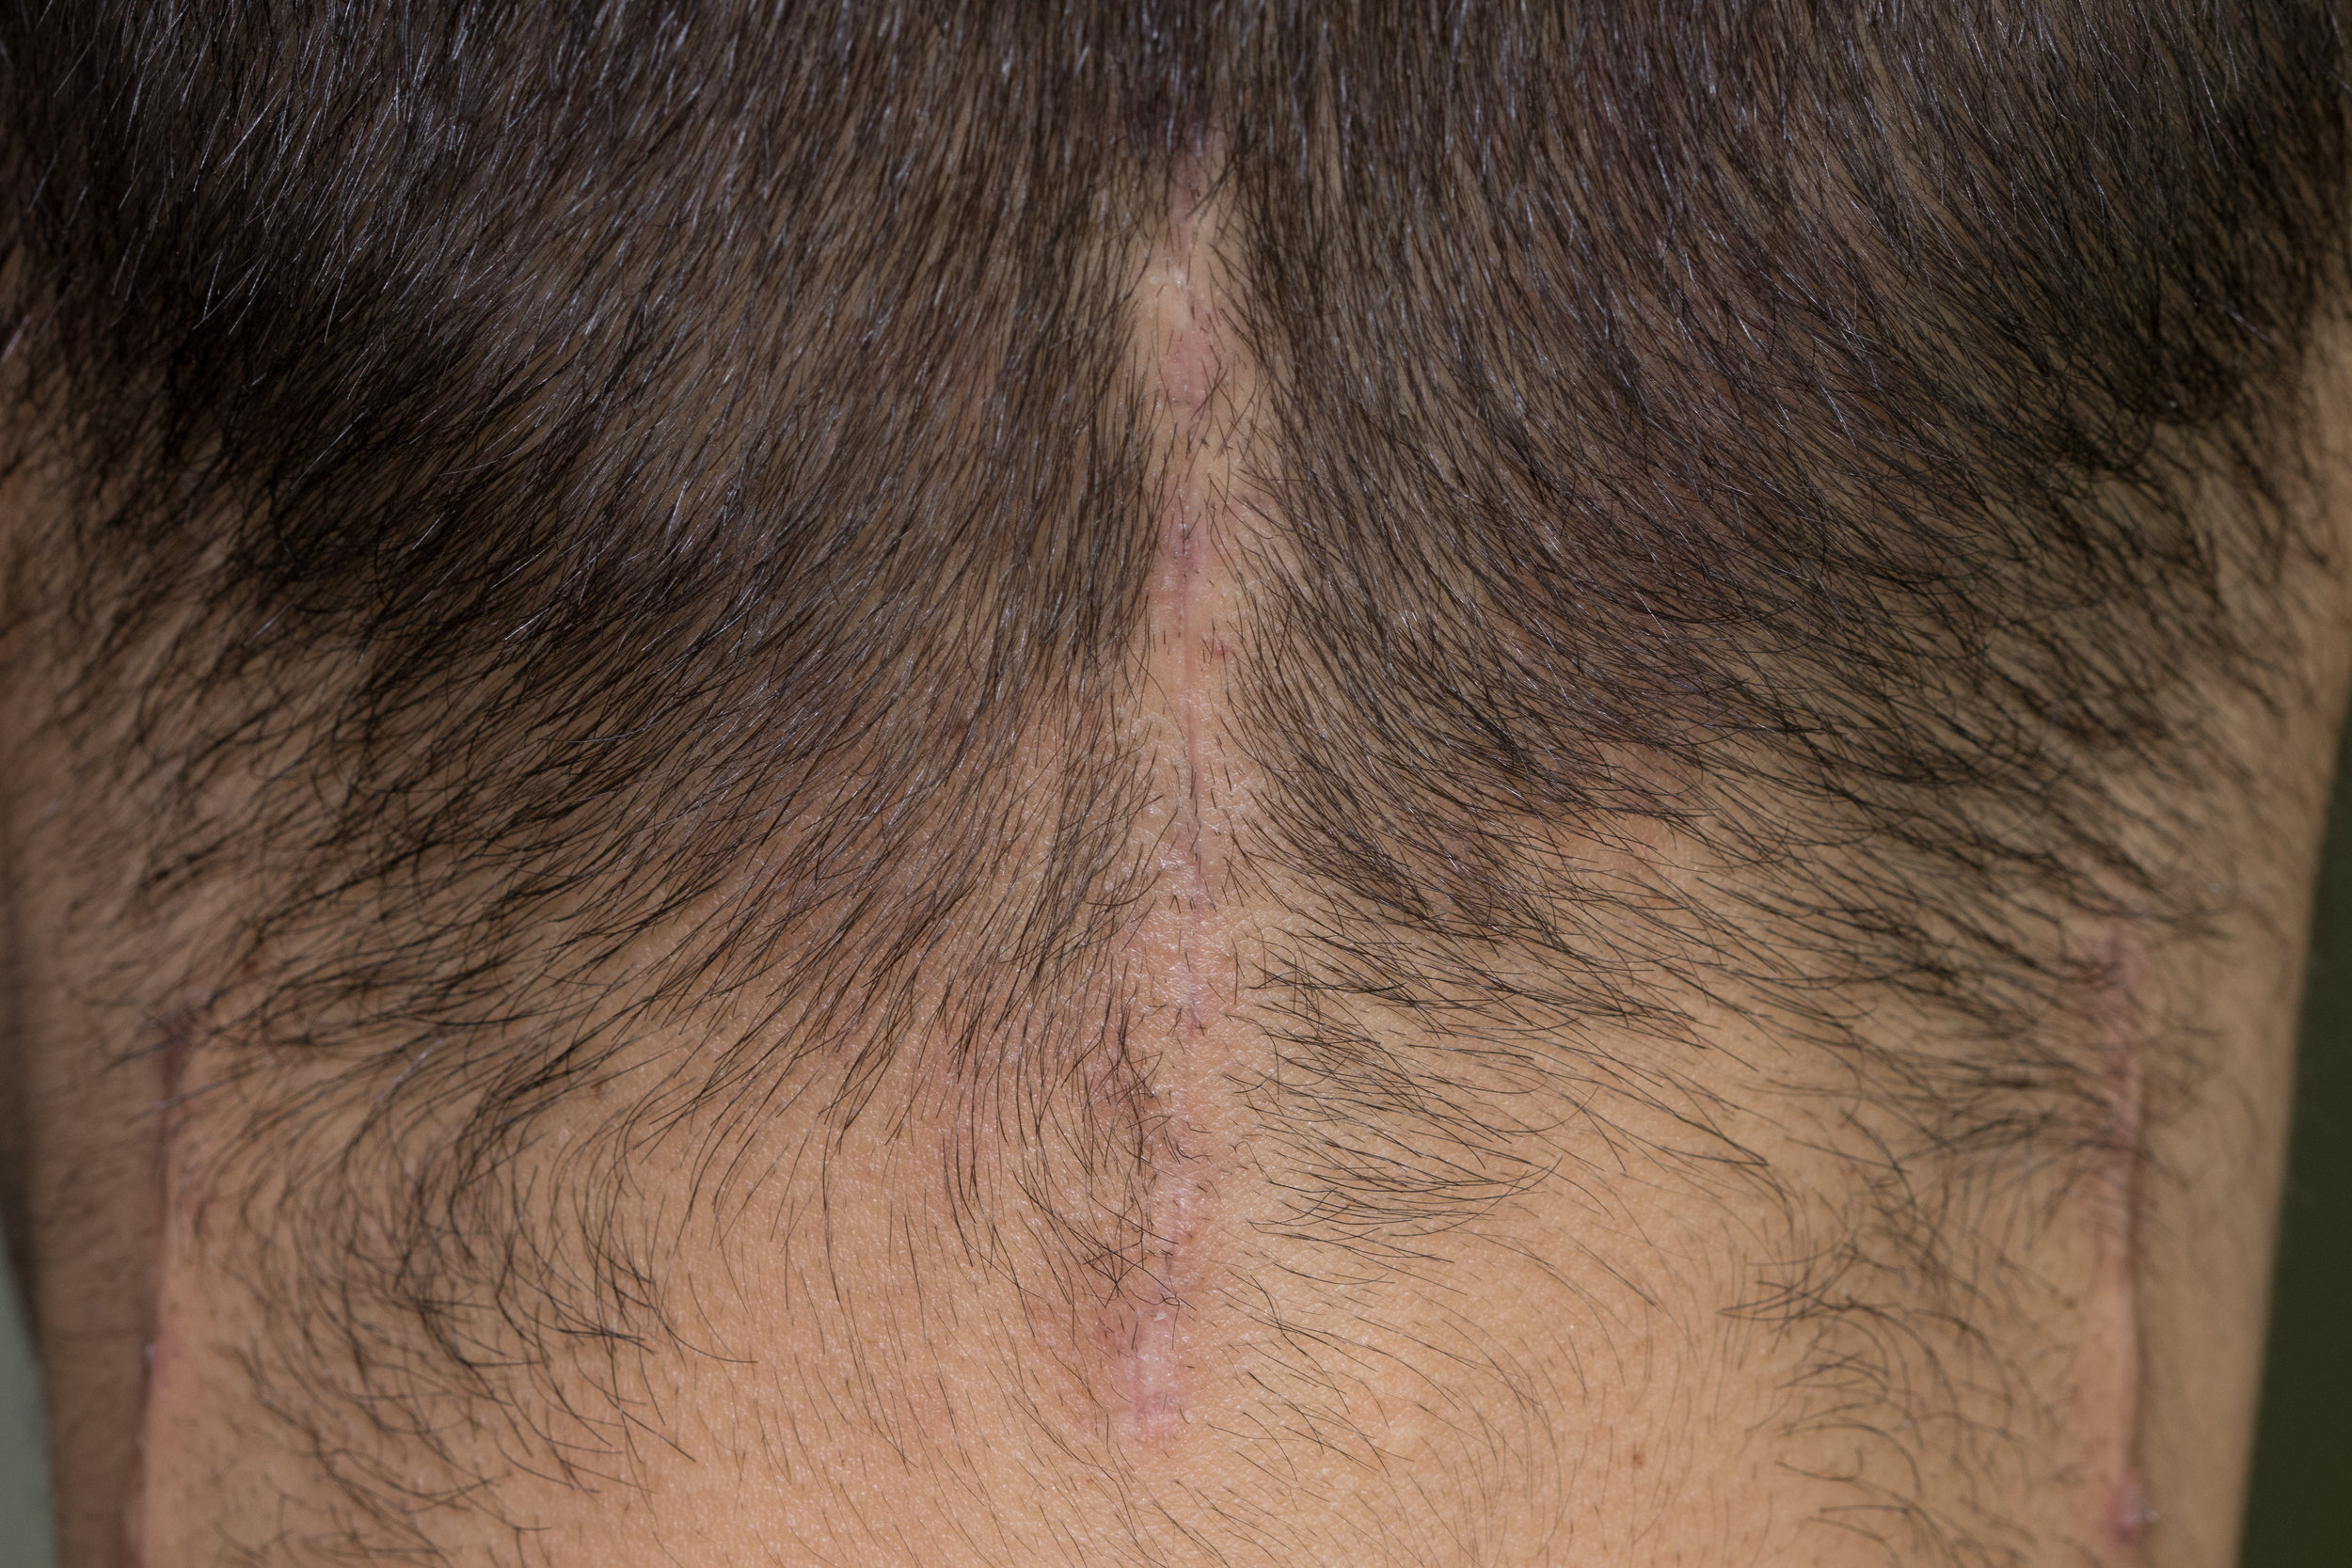 Incision for greater and third occipital nerves, 24 days post-op